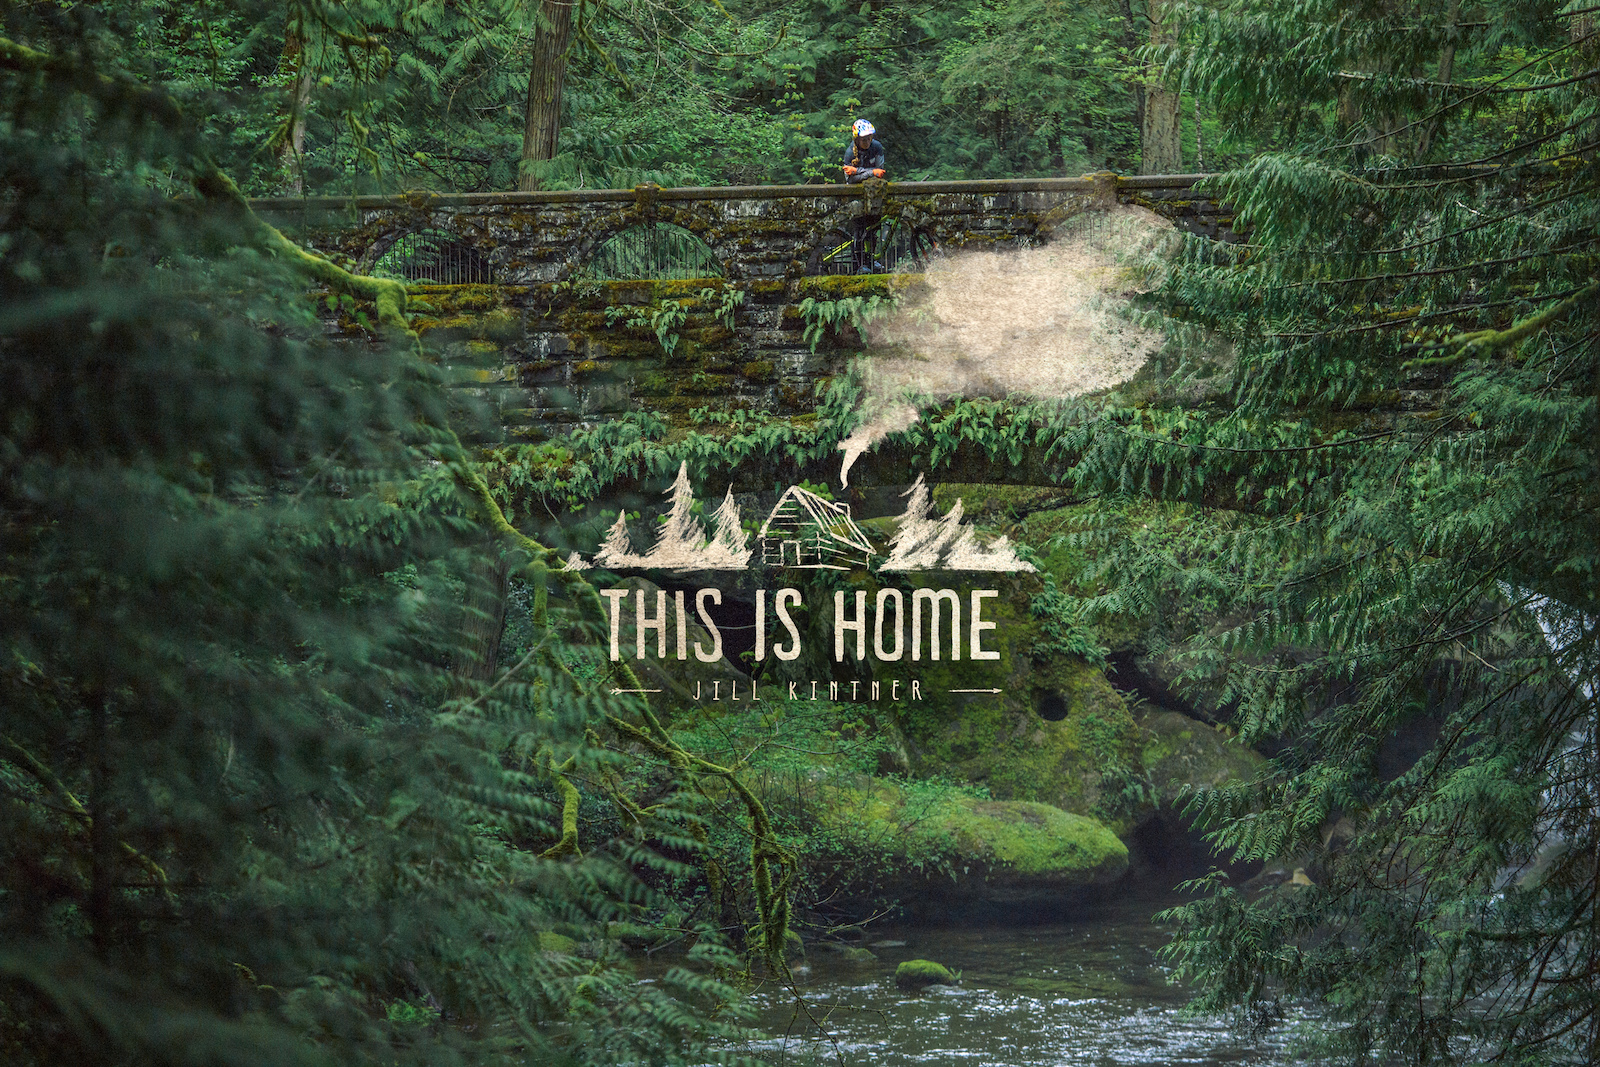 This is Home Jill Kintner